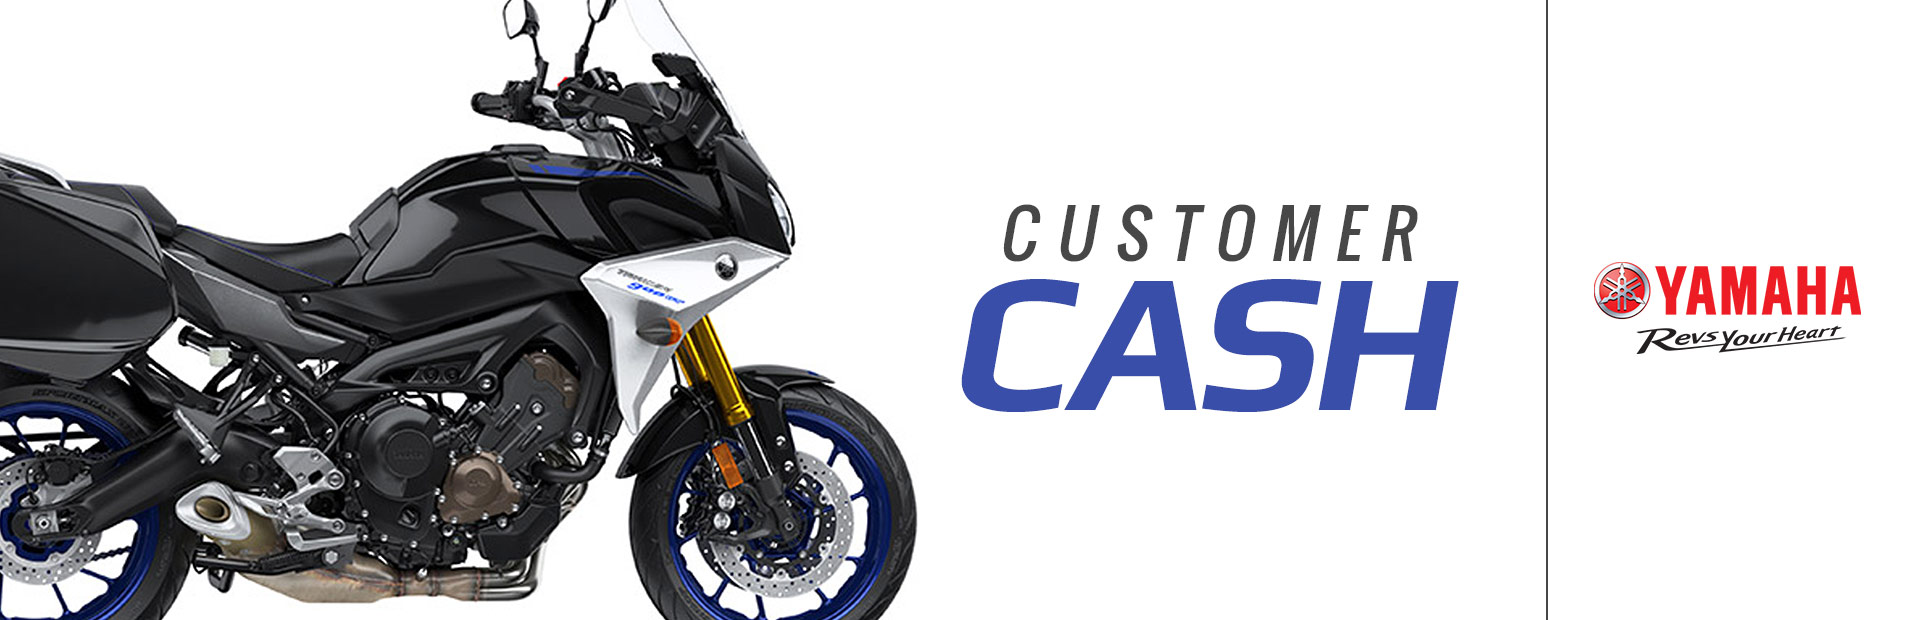 Customer Cash (ATV, SxS, Motorcycle)